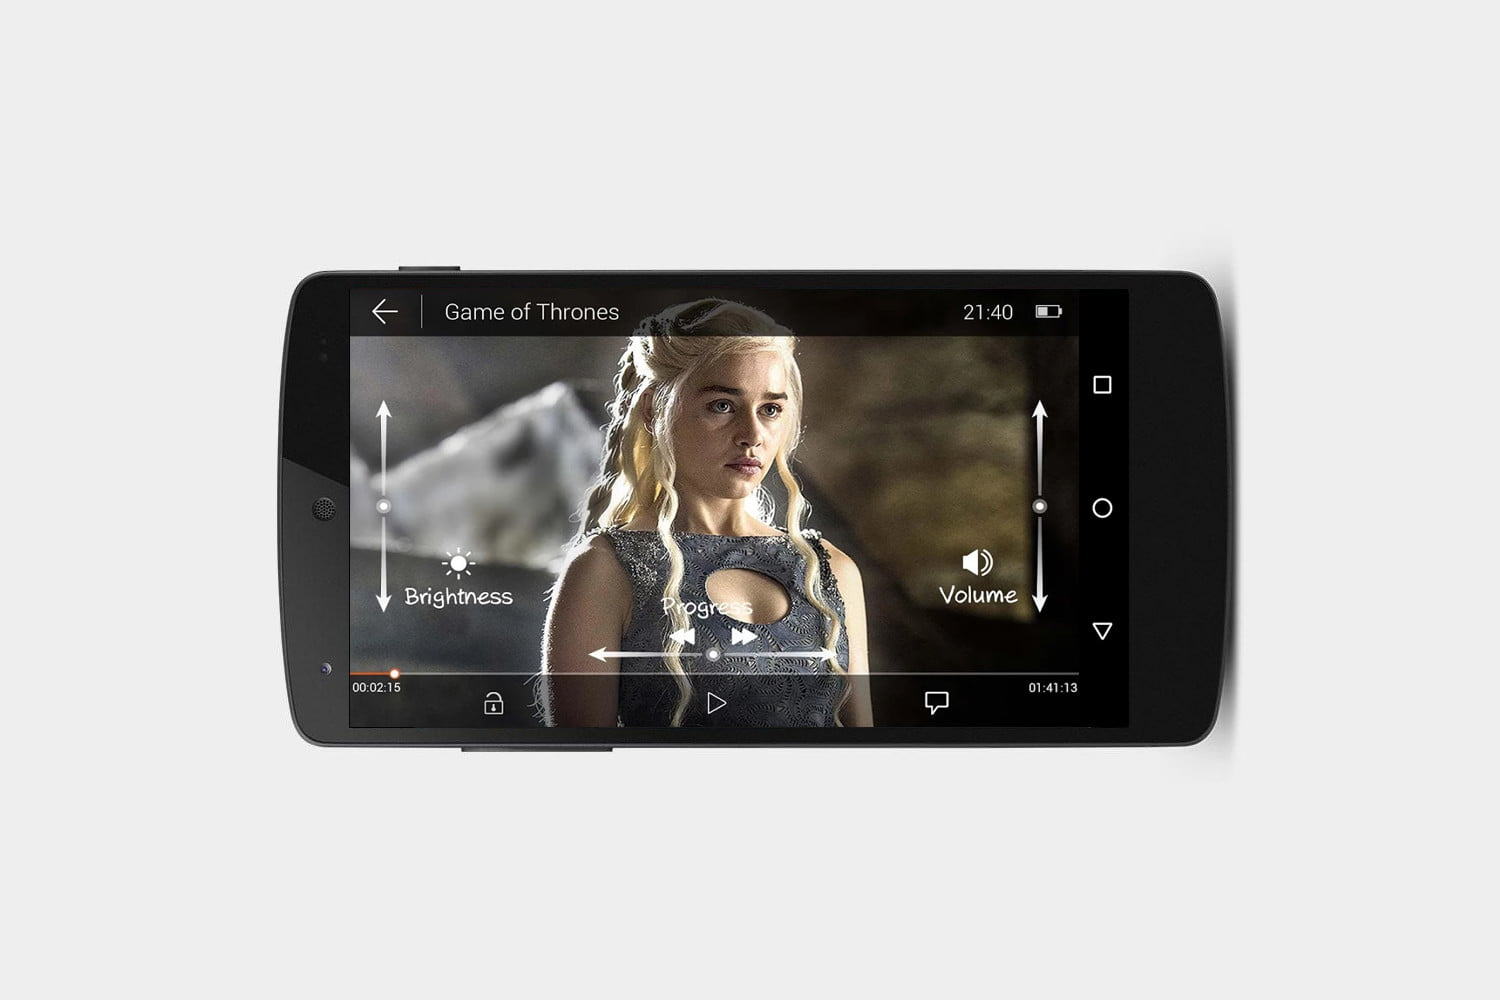 Phone Flash Player App For Android Phone how to install flash on an android phone or tablet digital trends dolphin video player